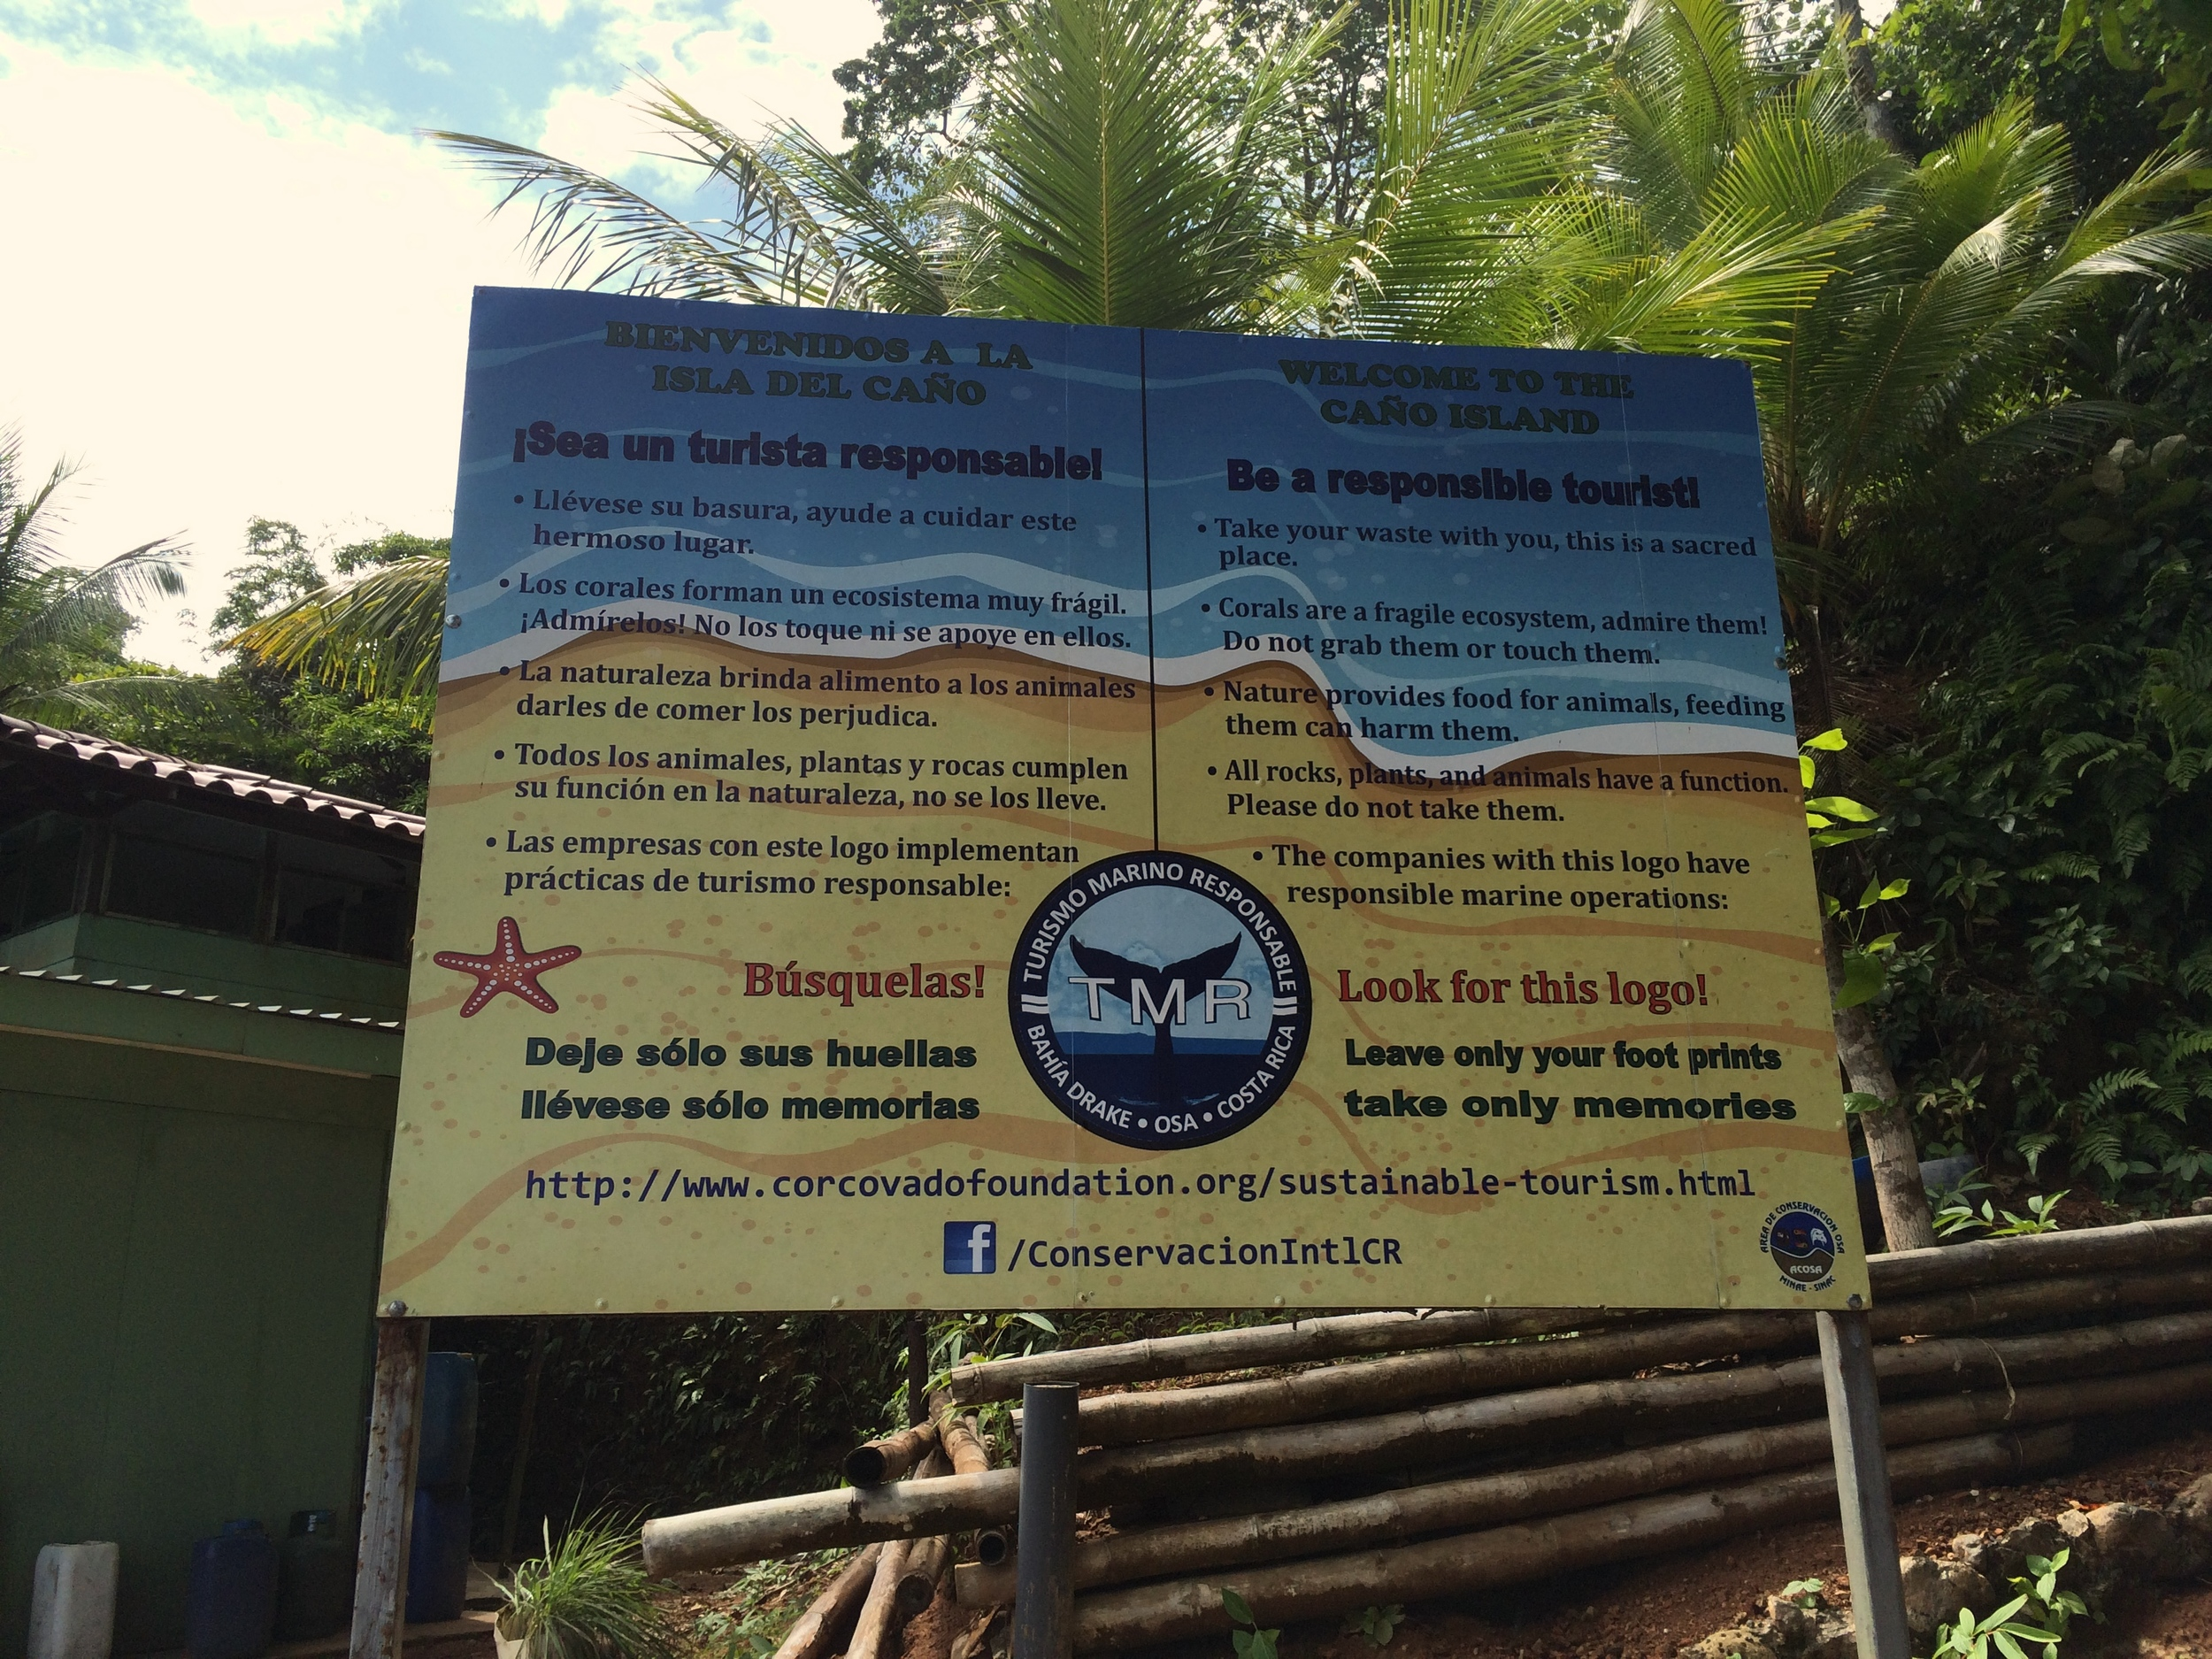 Welcome sign at Isla del Caño